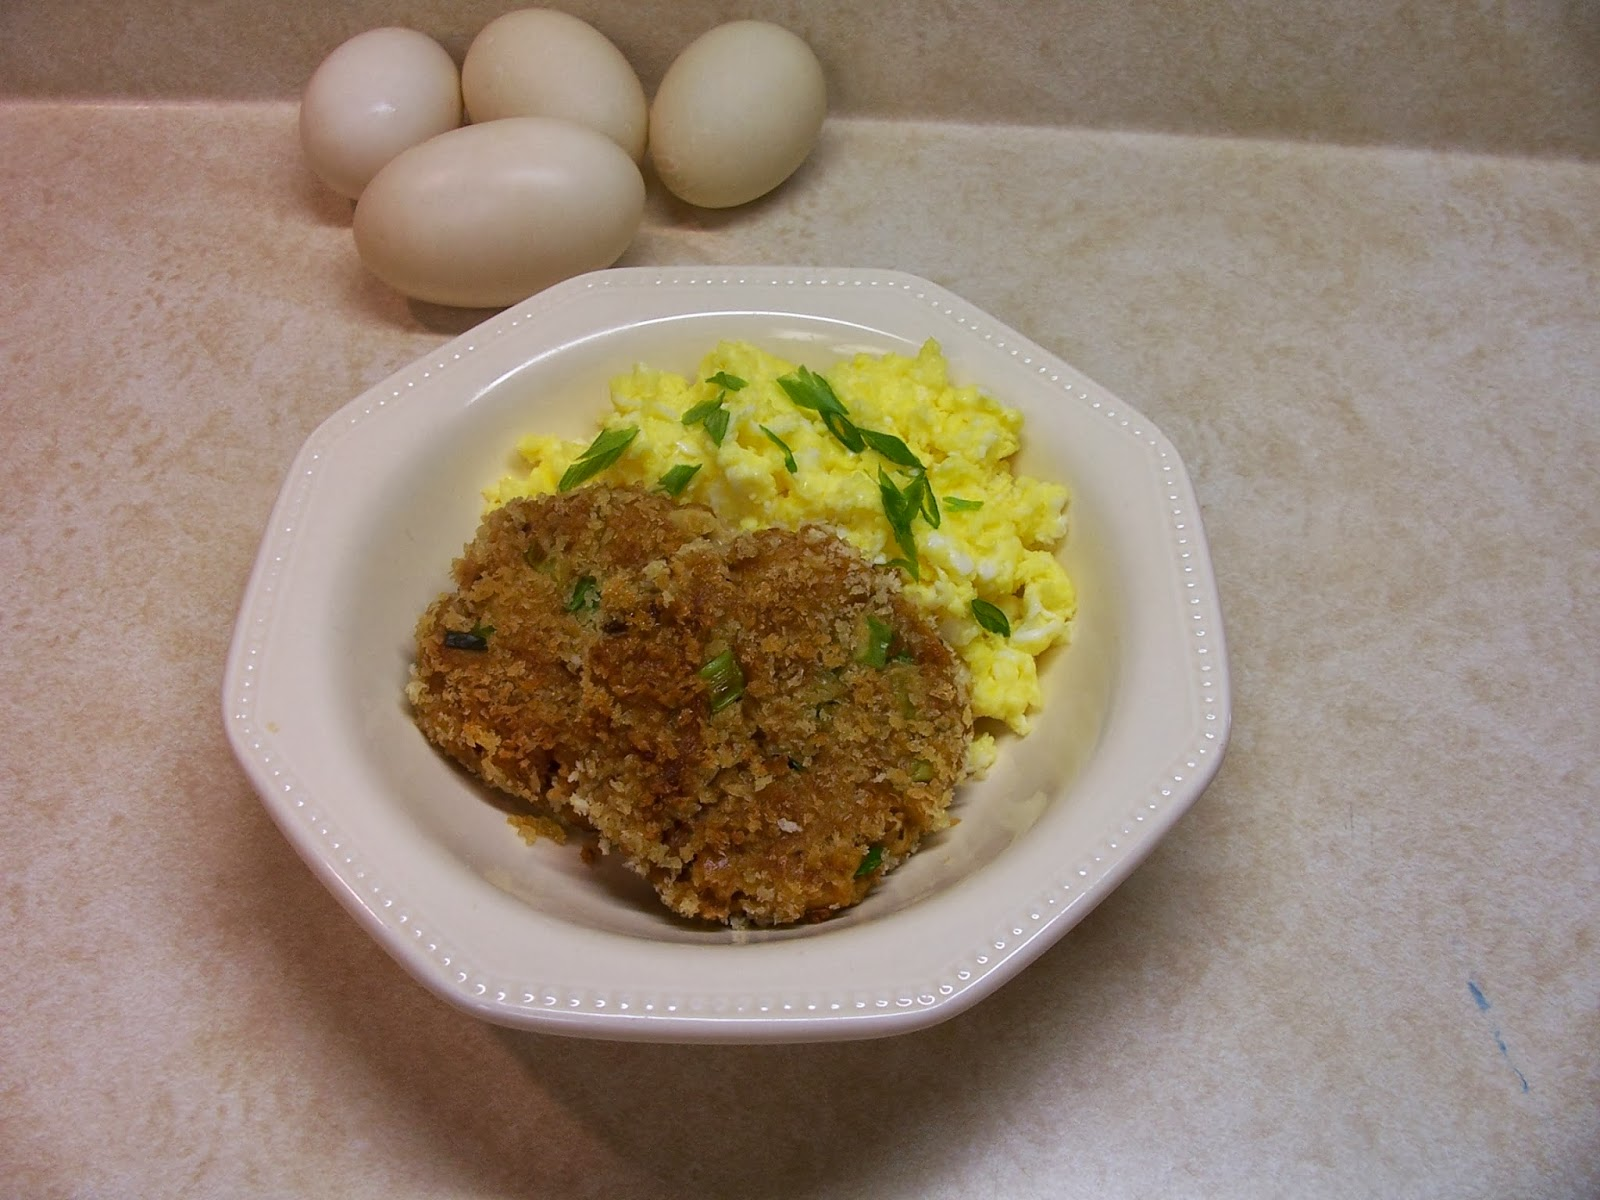 Cowgirl S Country Life Blue Swedish Duck Eggs And Potted Pork